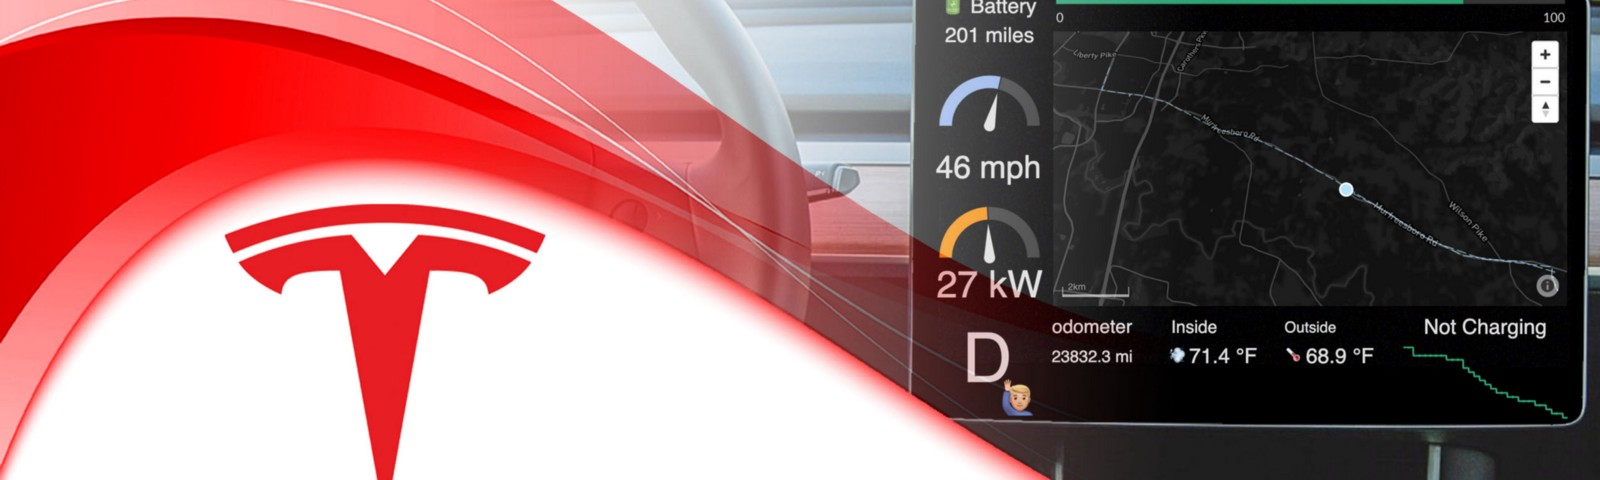 Tesla data dashboard